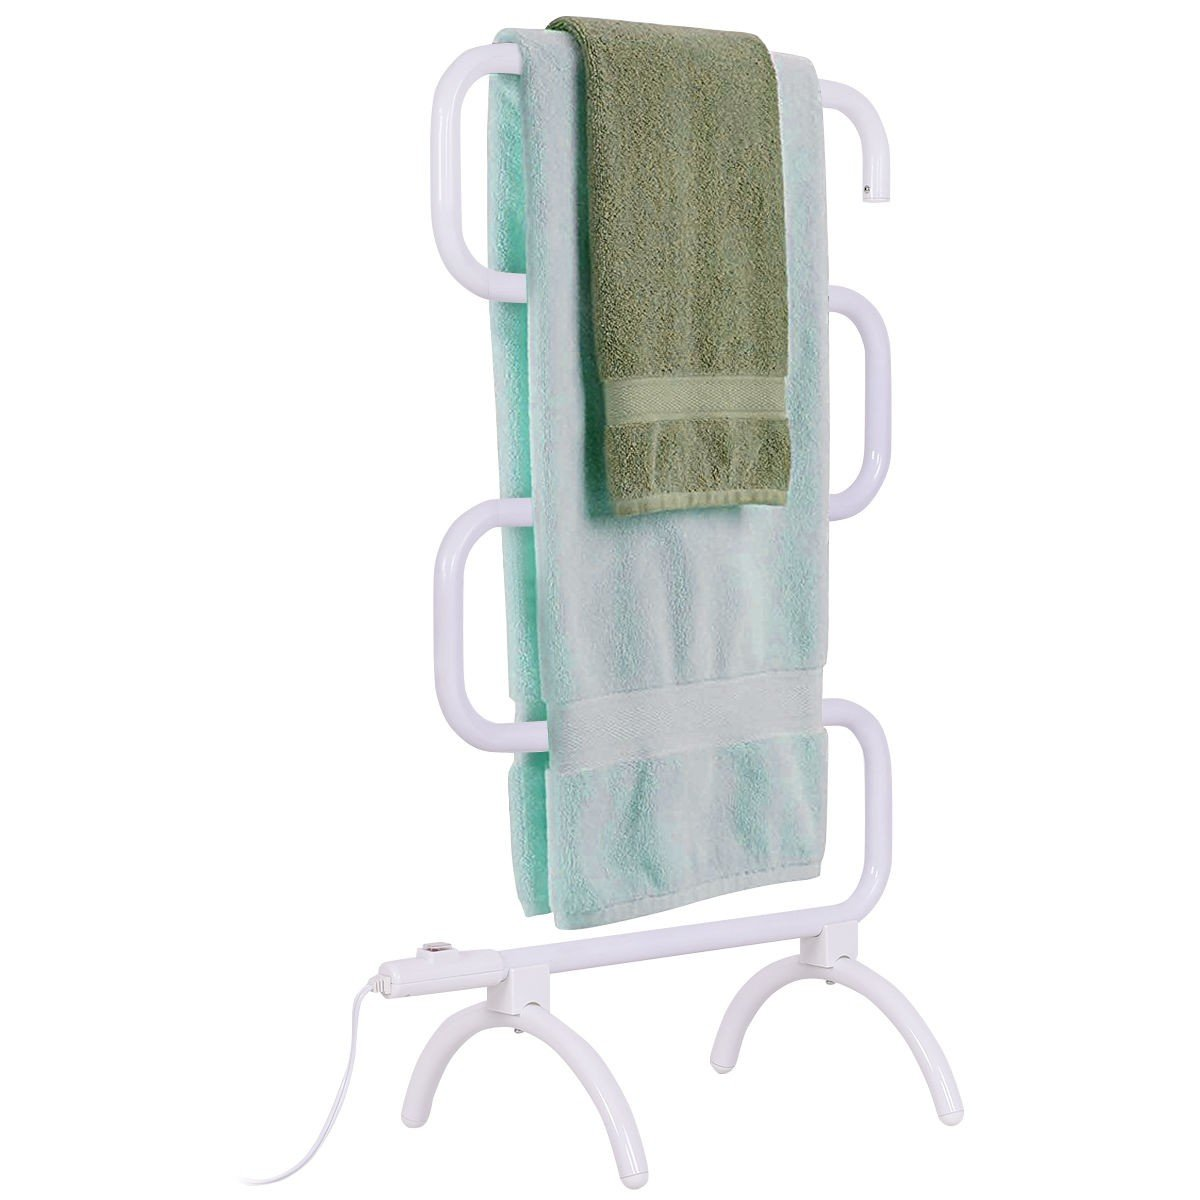 MD Group Towel Warmer Drying Rack Wall Mounted 100W Electric Bar Heated Holder Freestanding